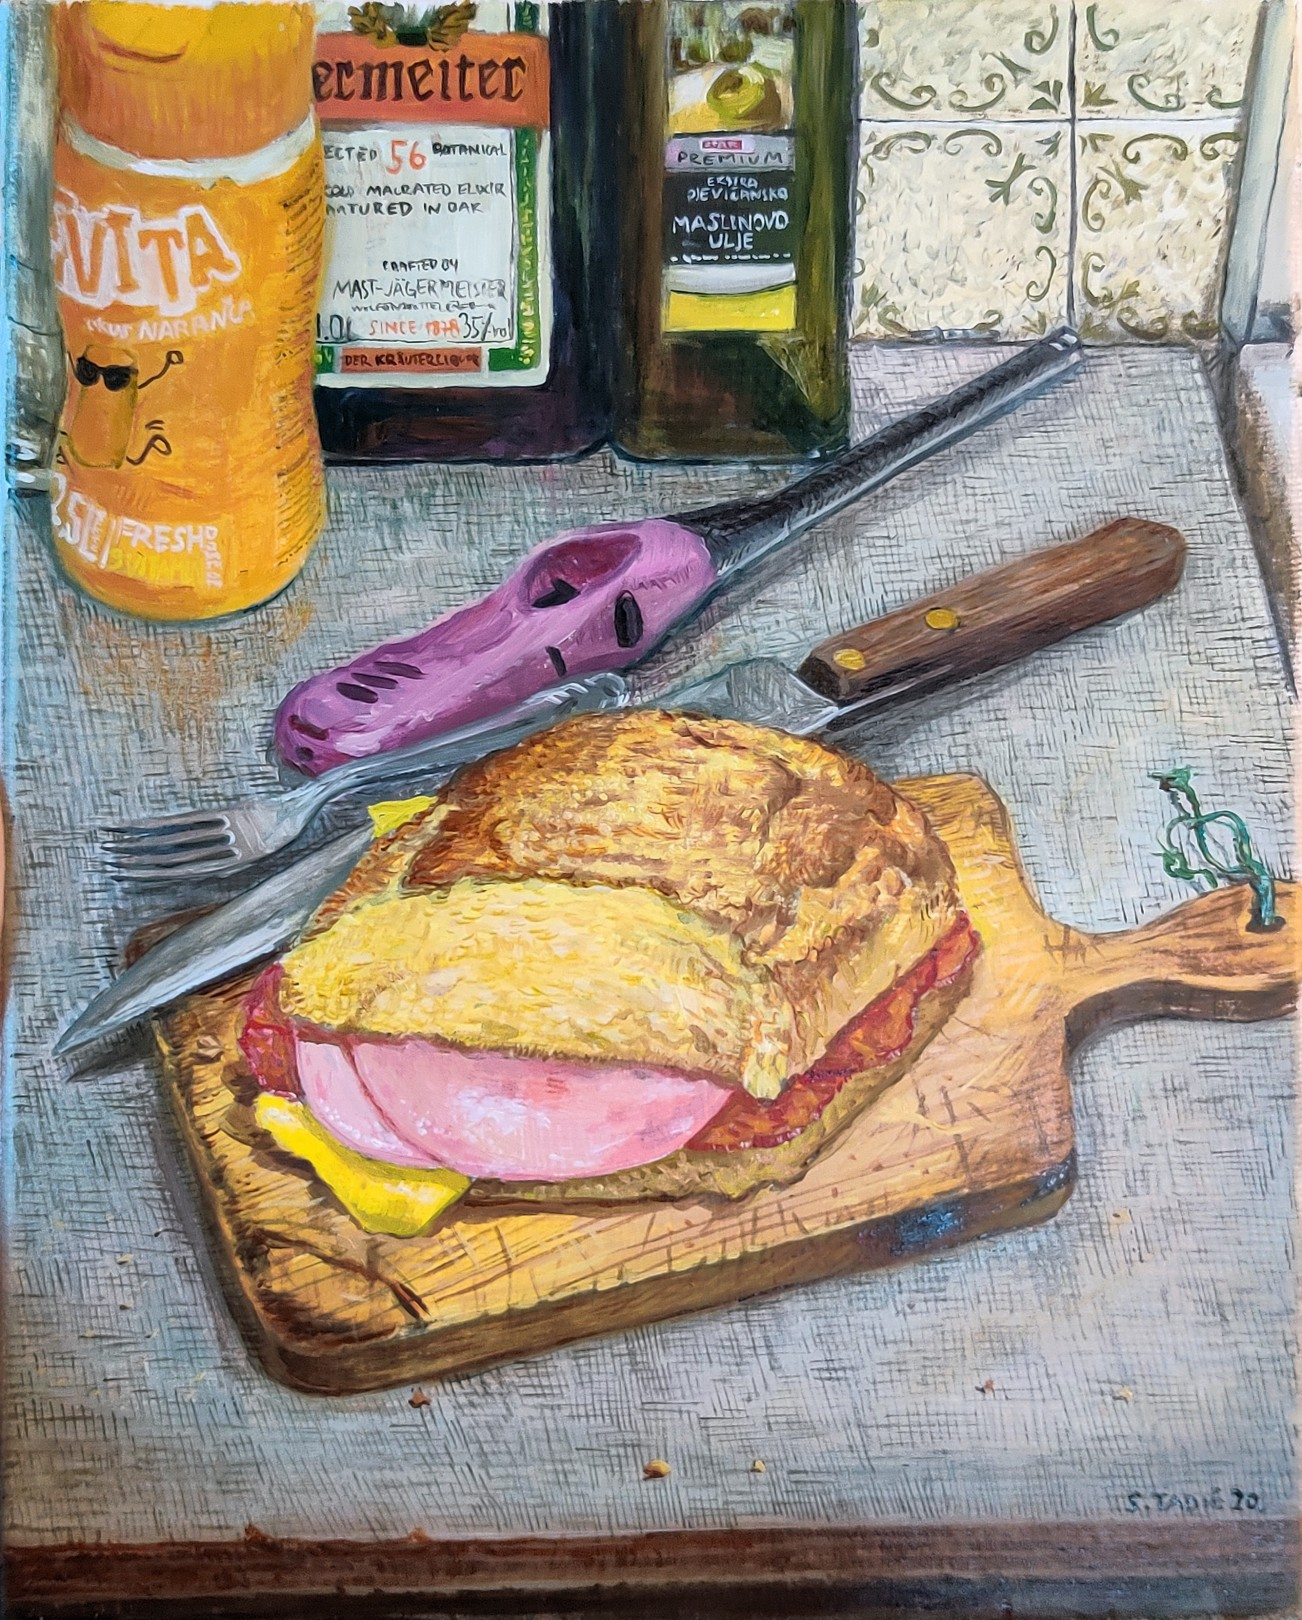 Stipan Tadic My Sandwich, 2020 Oil on canvas 30 x 24 cm. / 12 x 9.5 in.